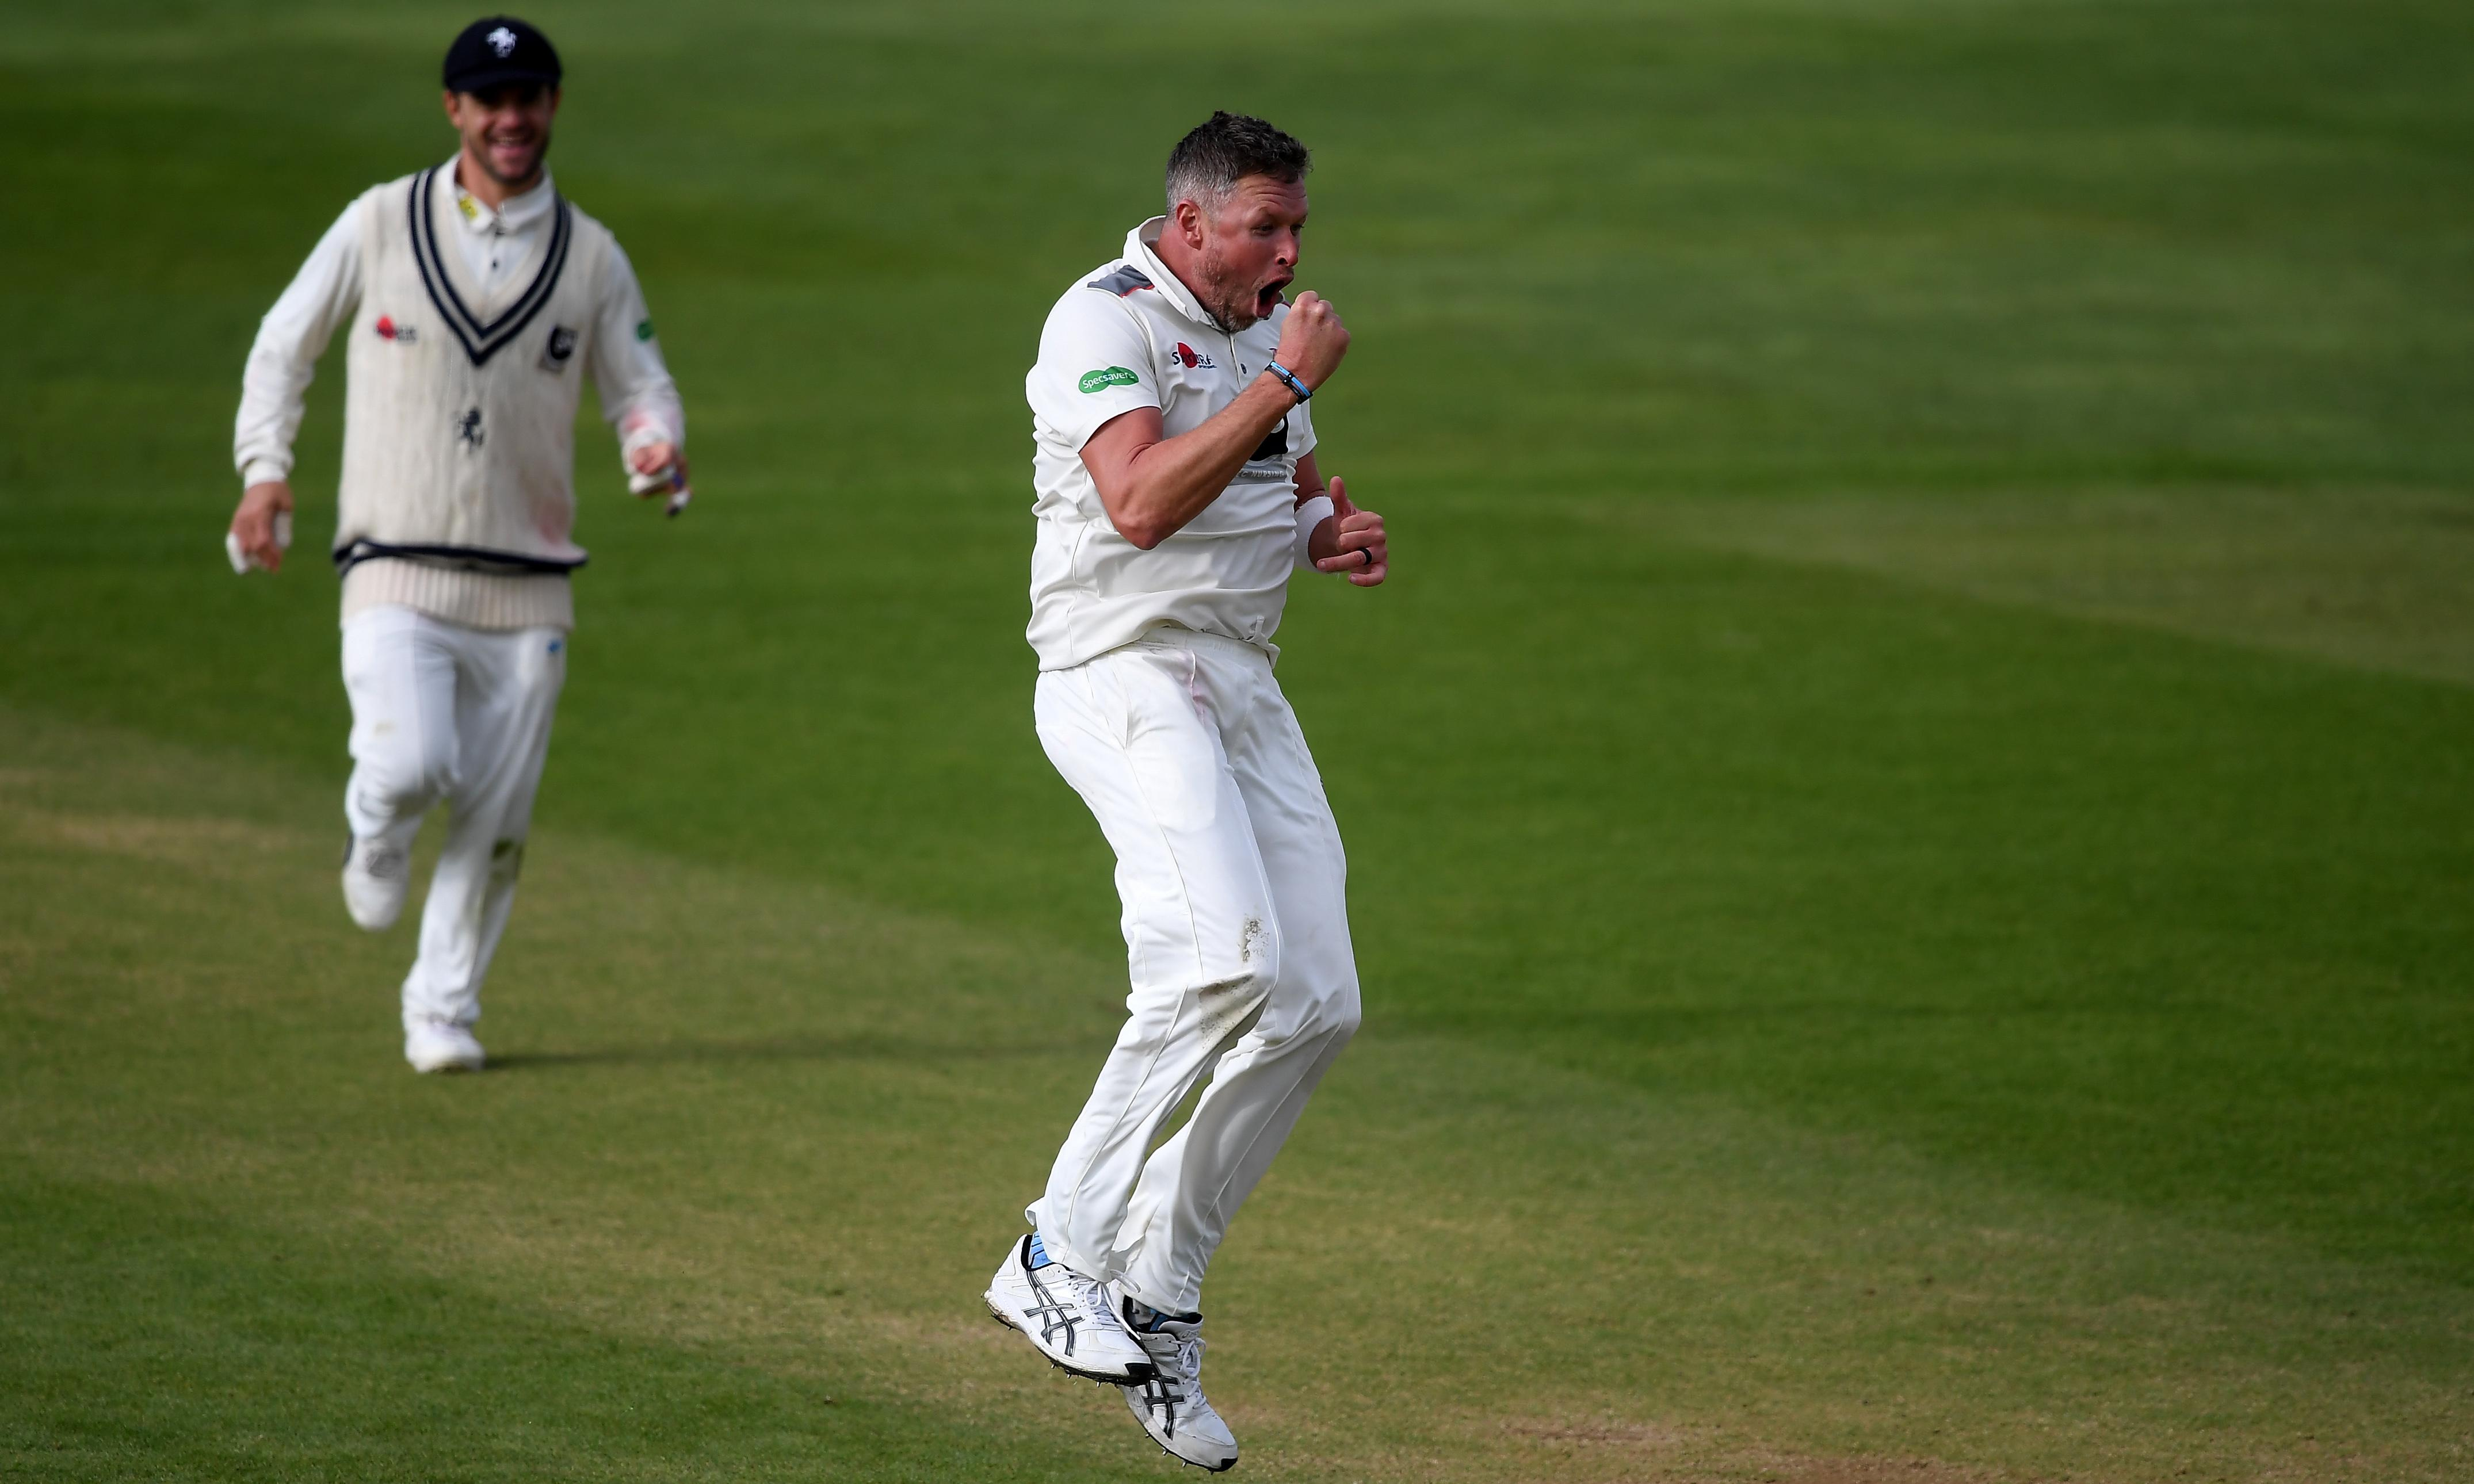 Kent in control at Taunton with help from Mitchell Claydon